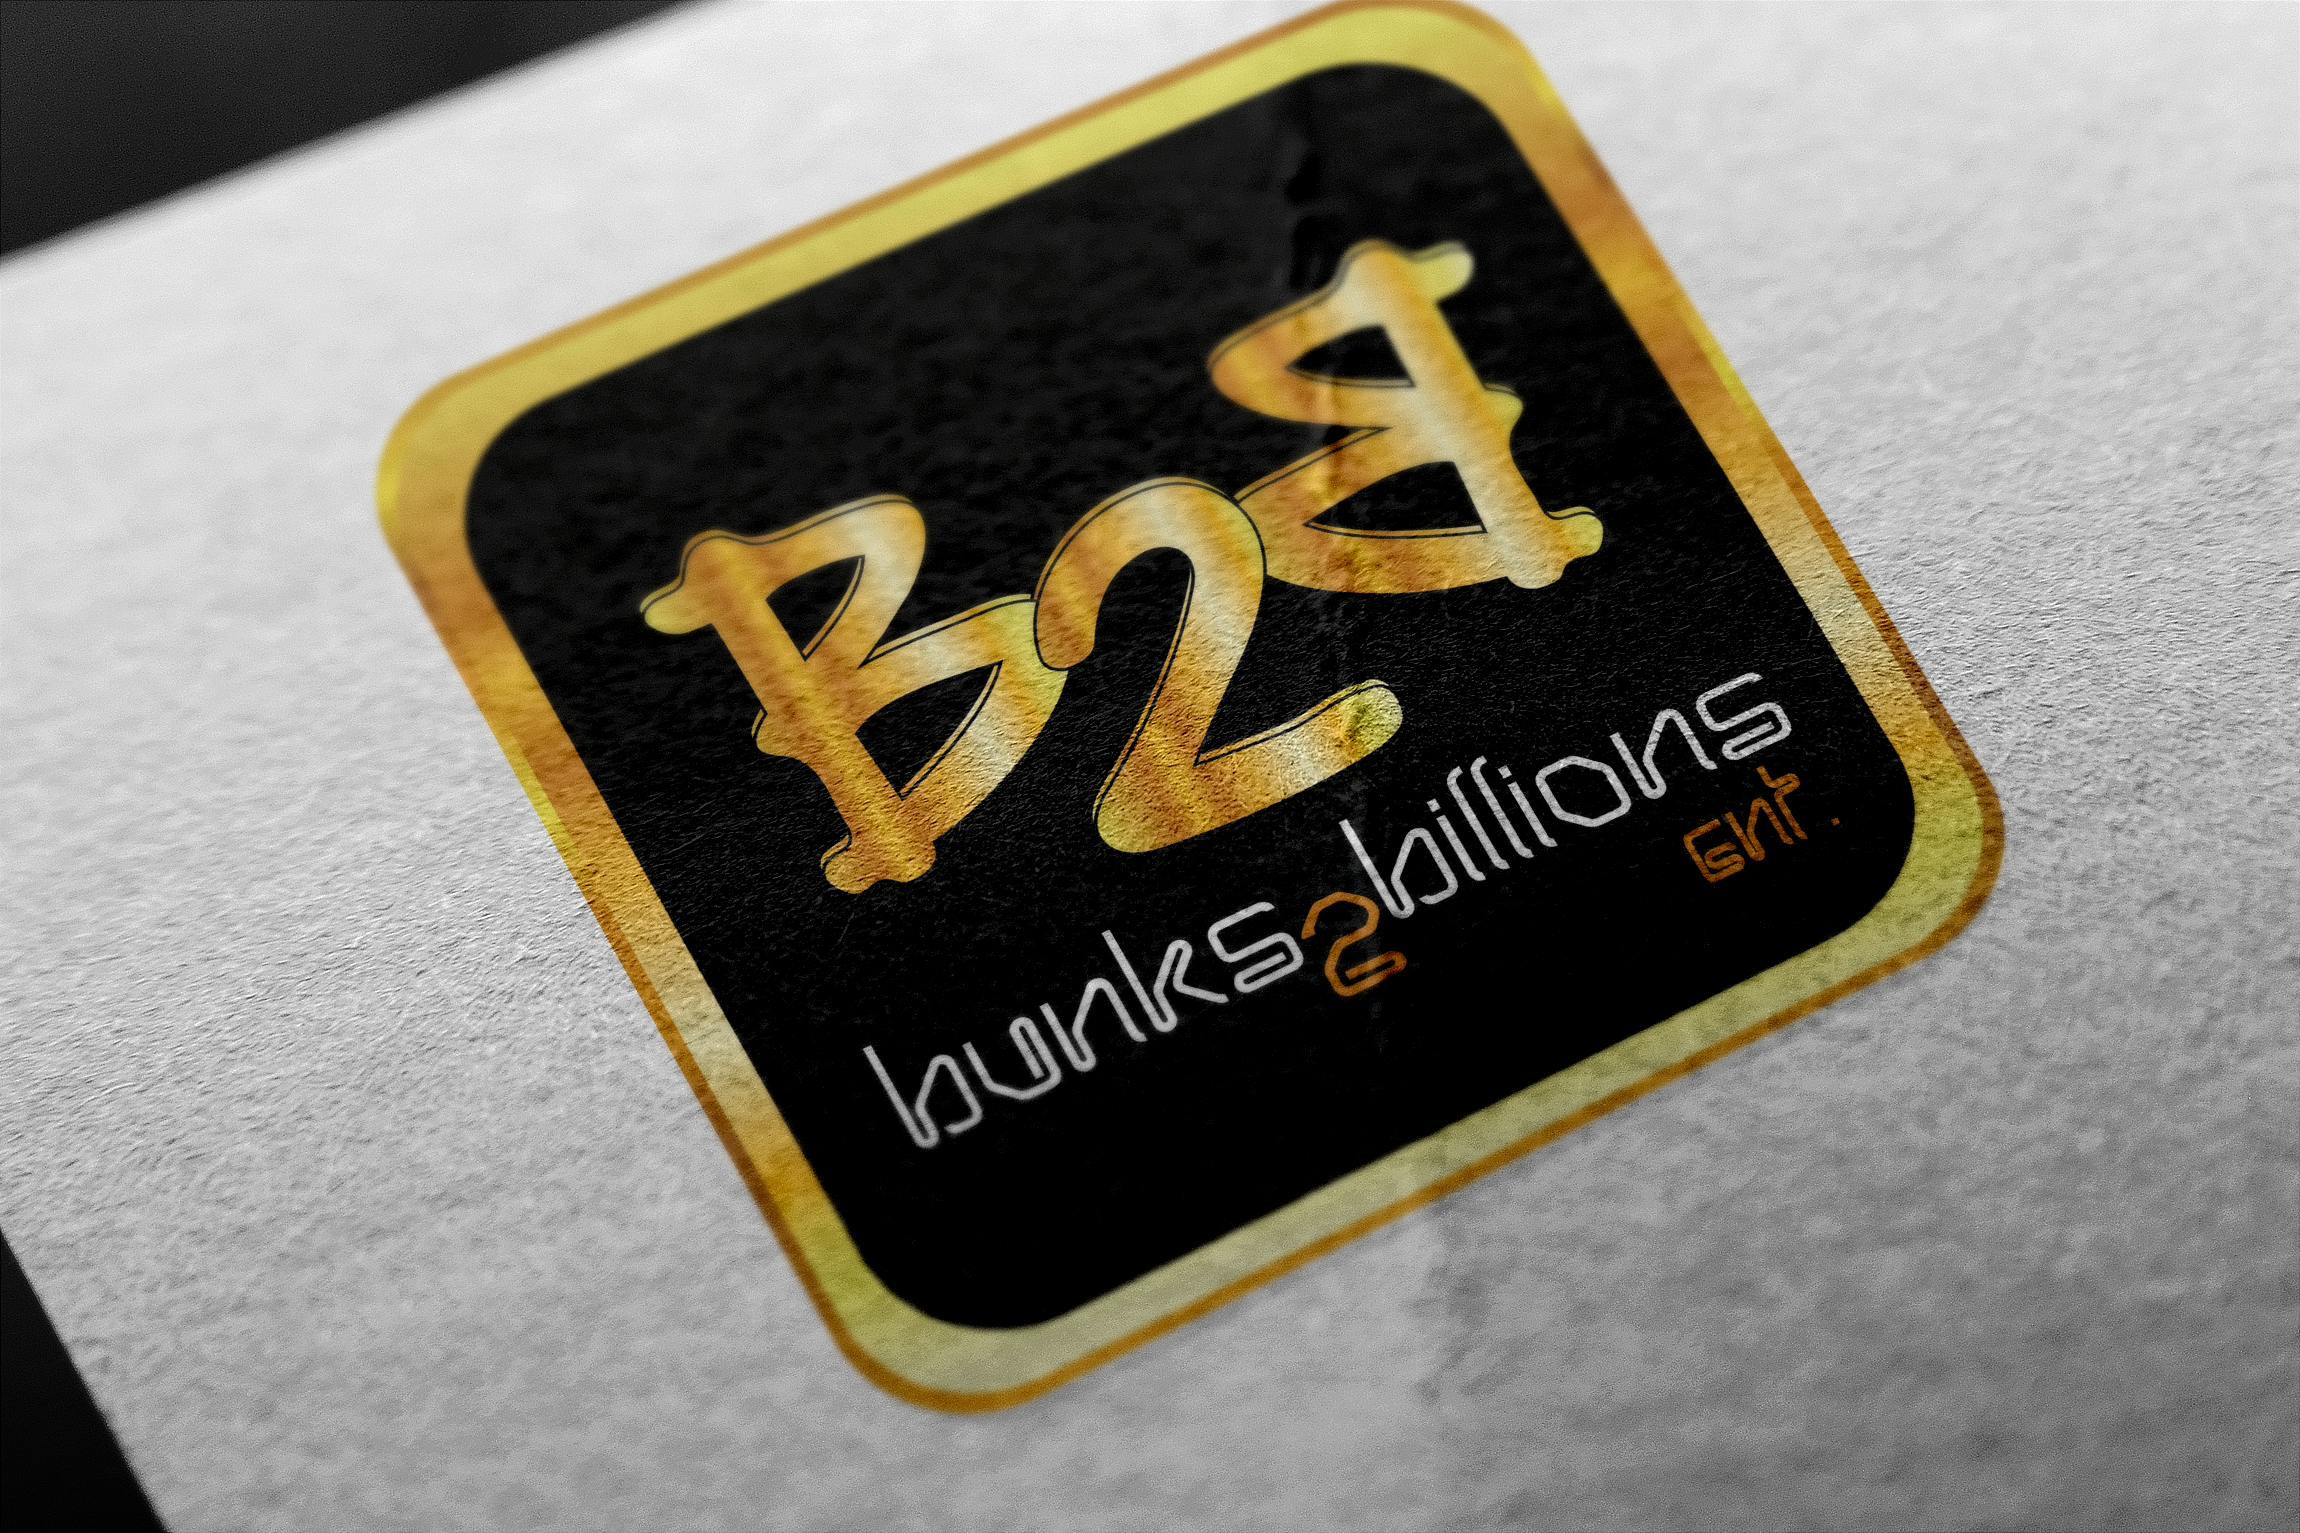 Bunks 2 Billions Logo